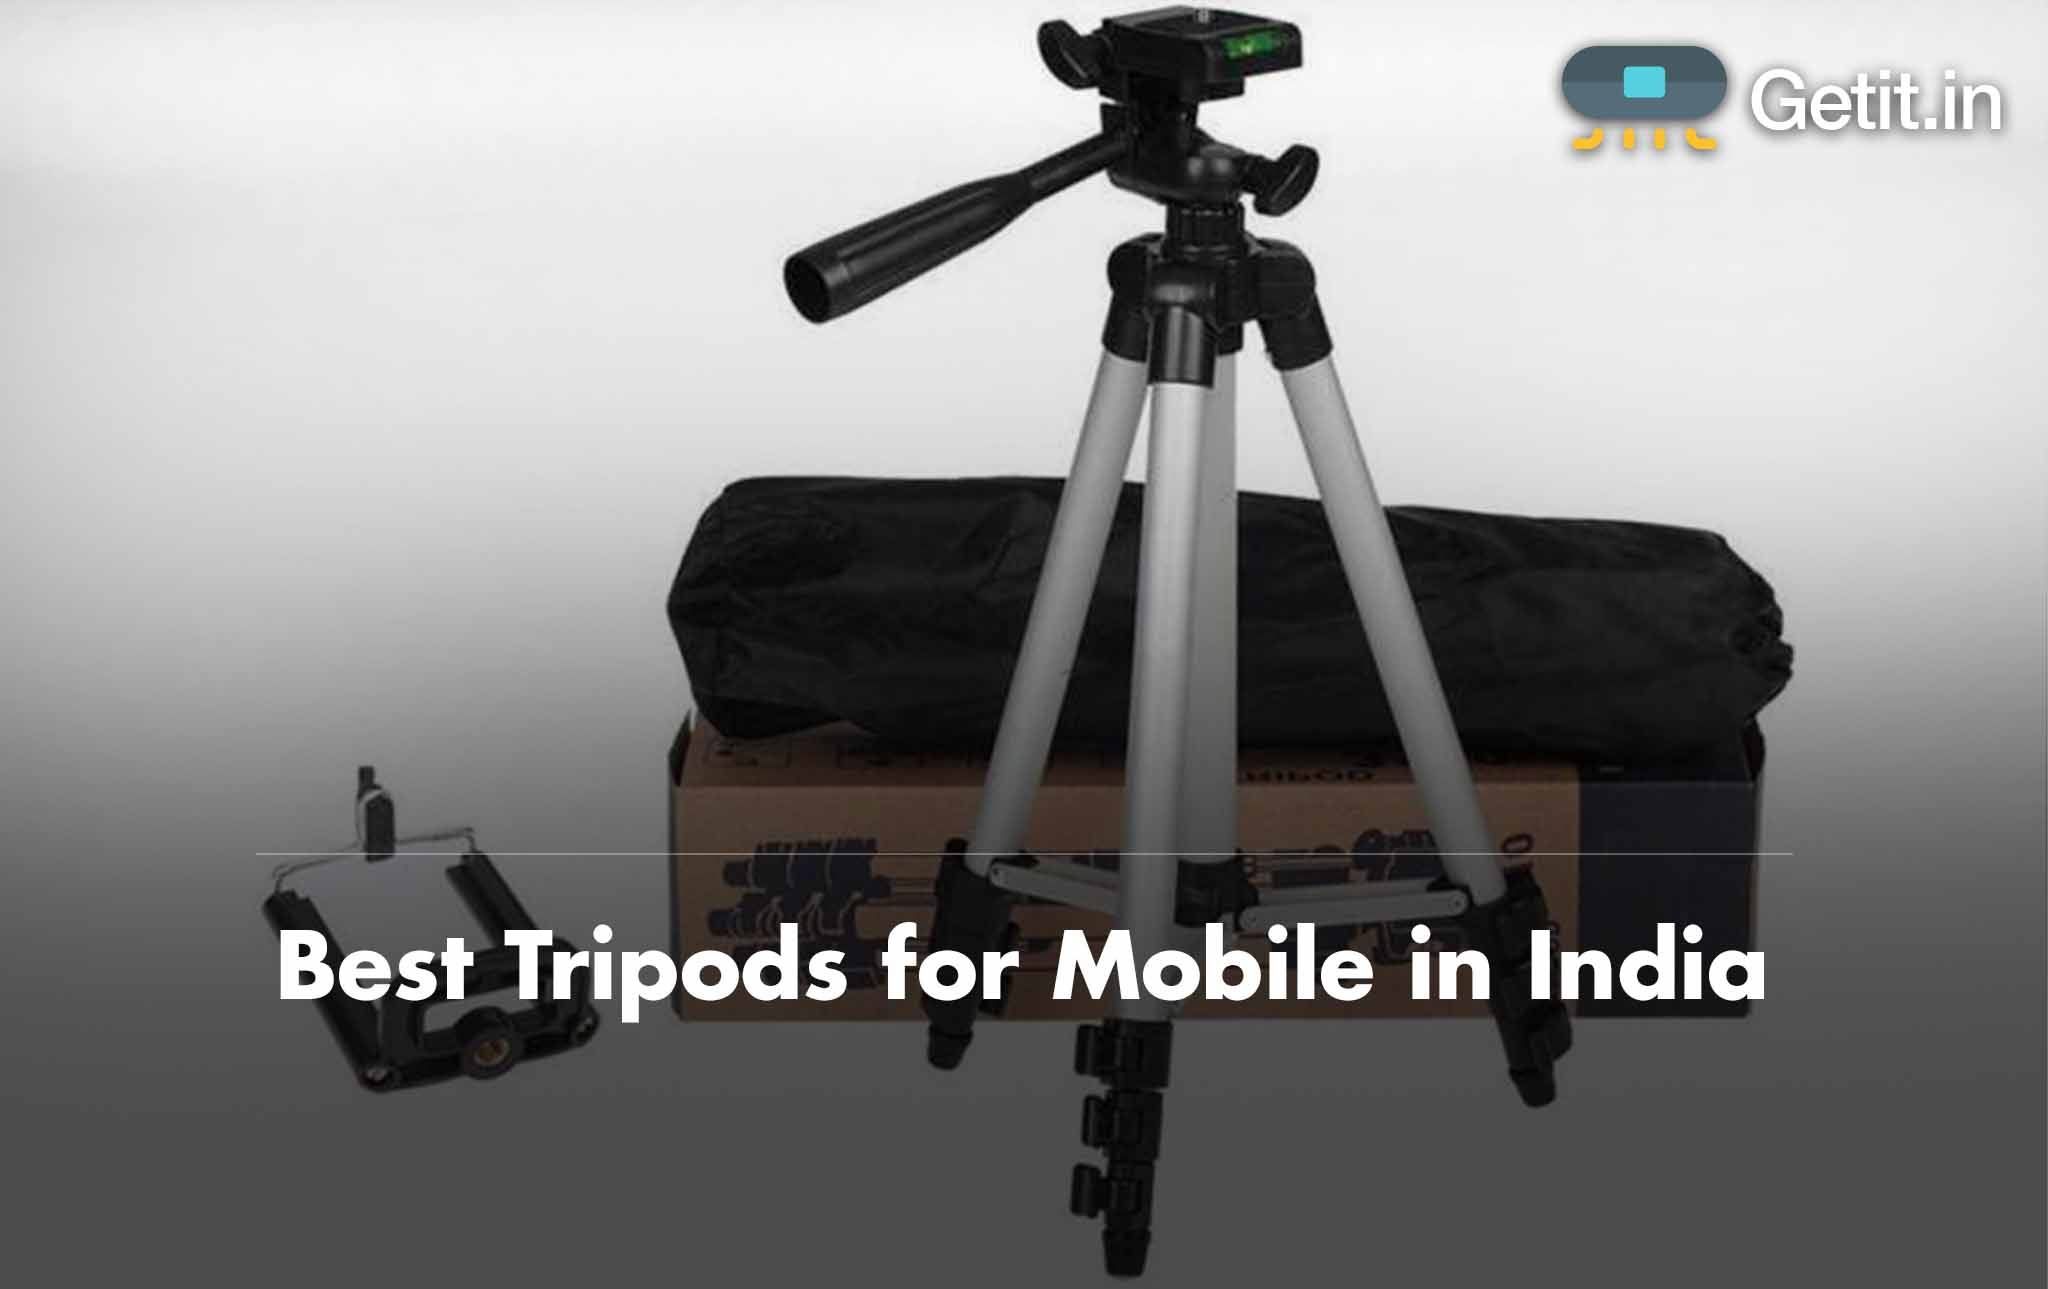 Best Tripods for Mobile in India